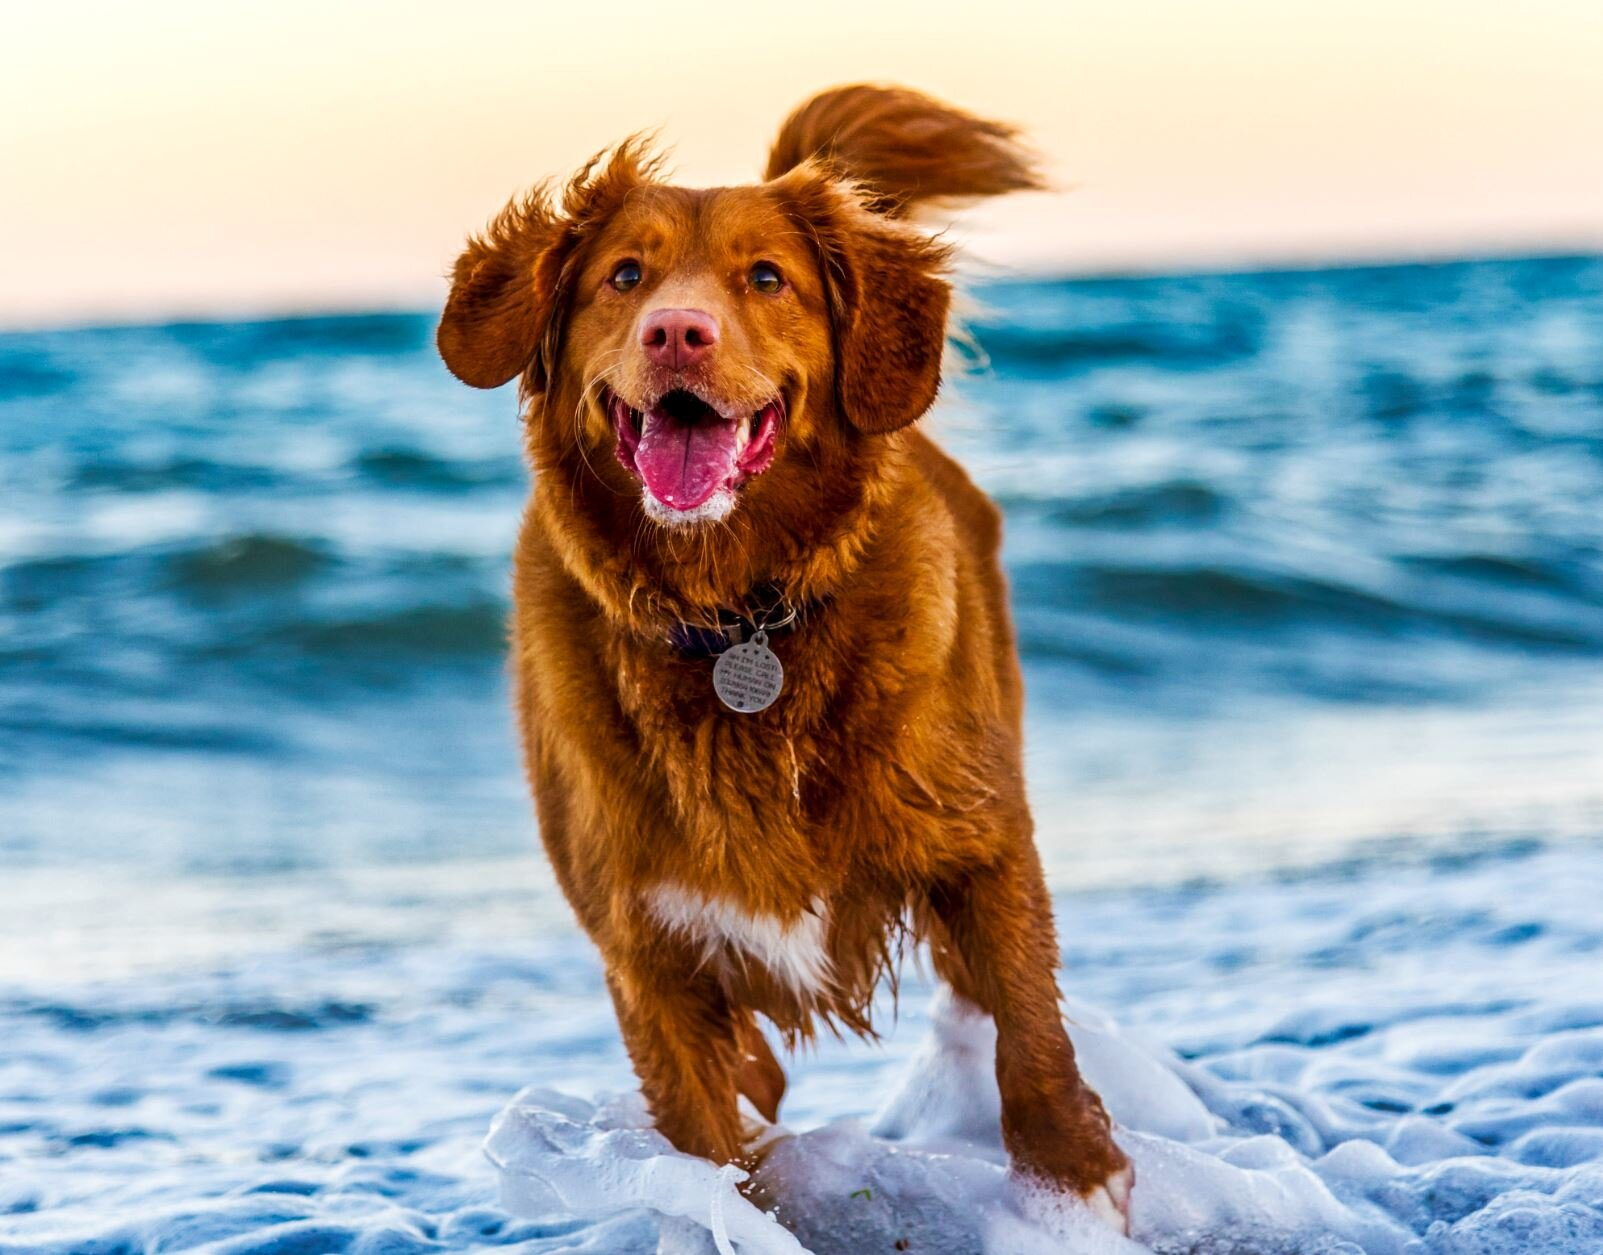 Owning a dog is linked to more physical activity and social interaction - Image Credit:  Oscar Sutton via Unsplash  - HDR tune by  Universal-Sci